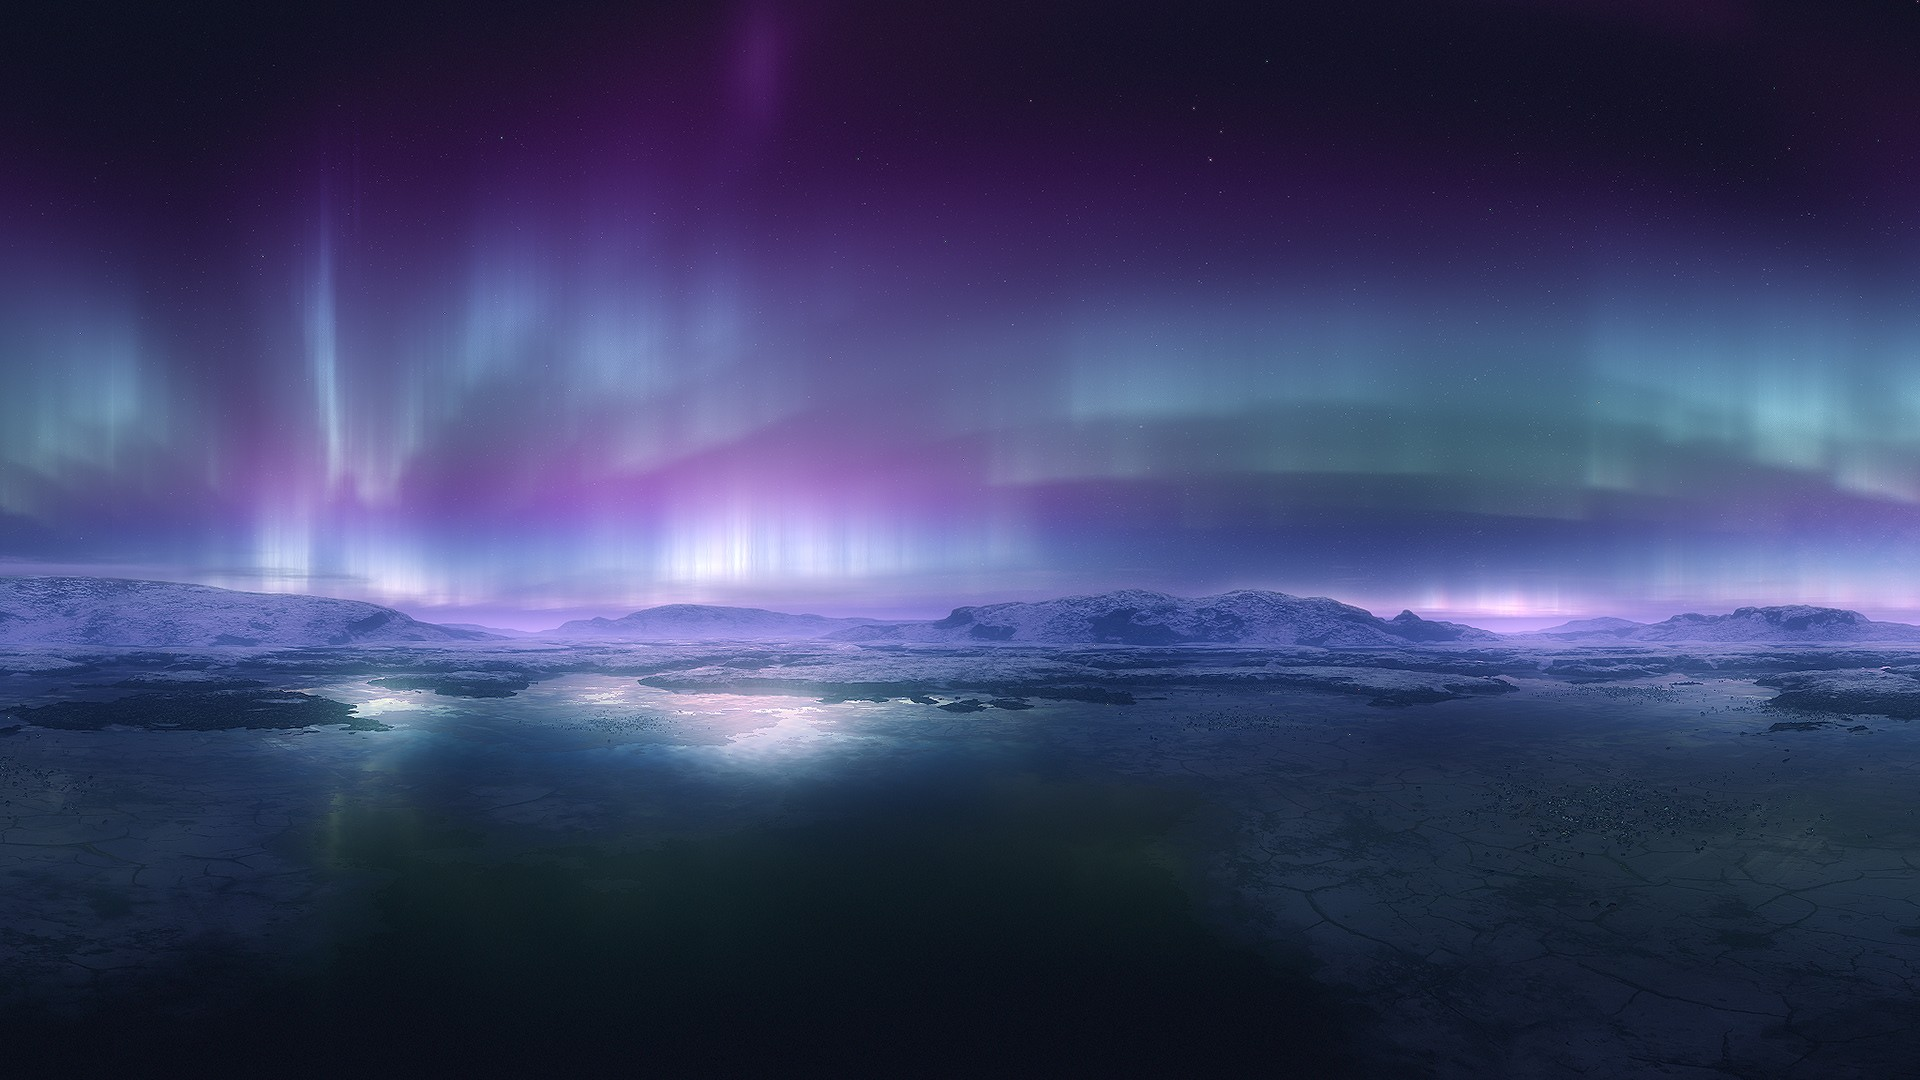 3d Wallpaper For Apple Ipad Norther Aurora Sky Wallpapers Hd Wallpapers Id 25027